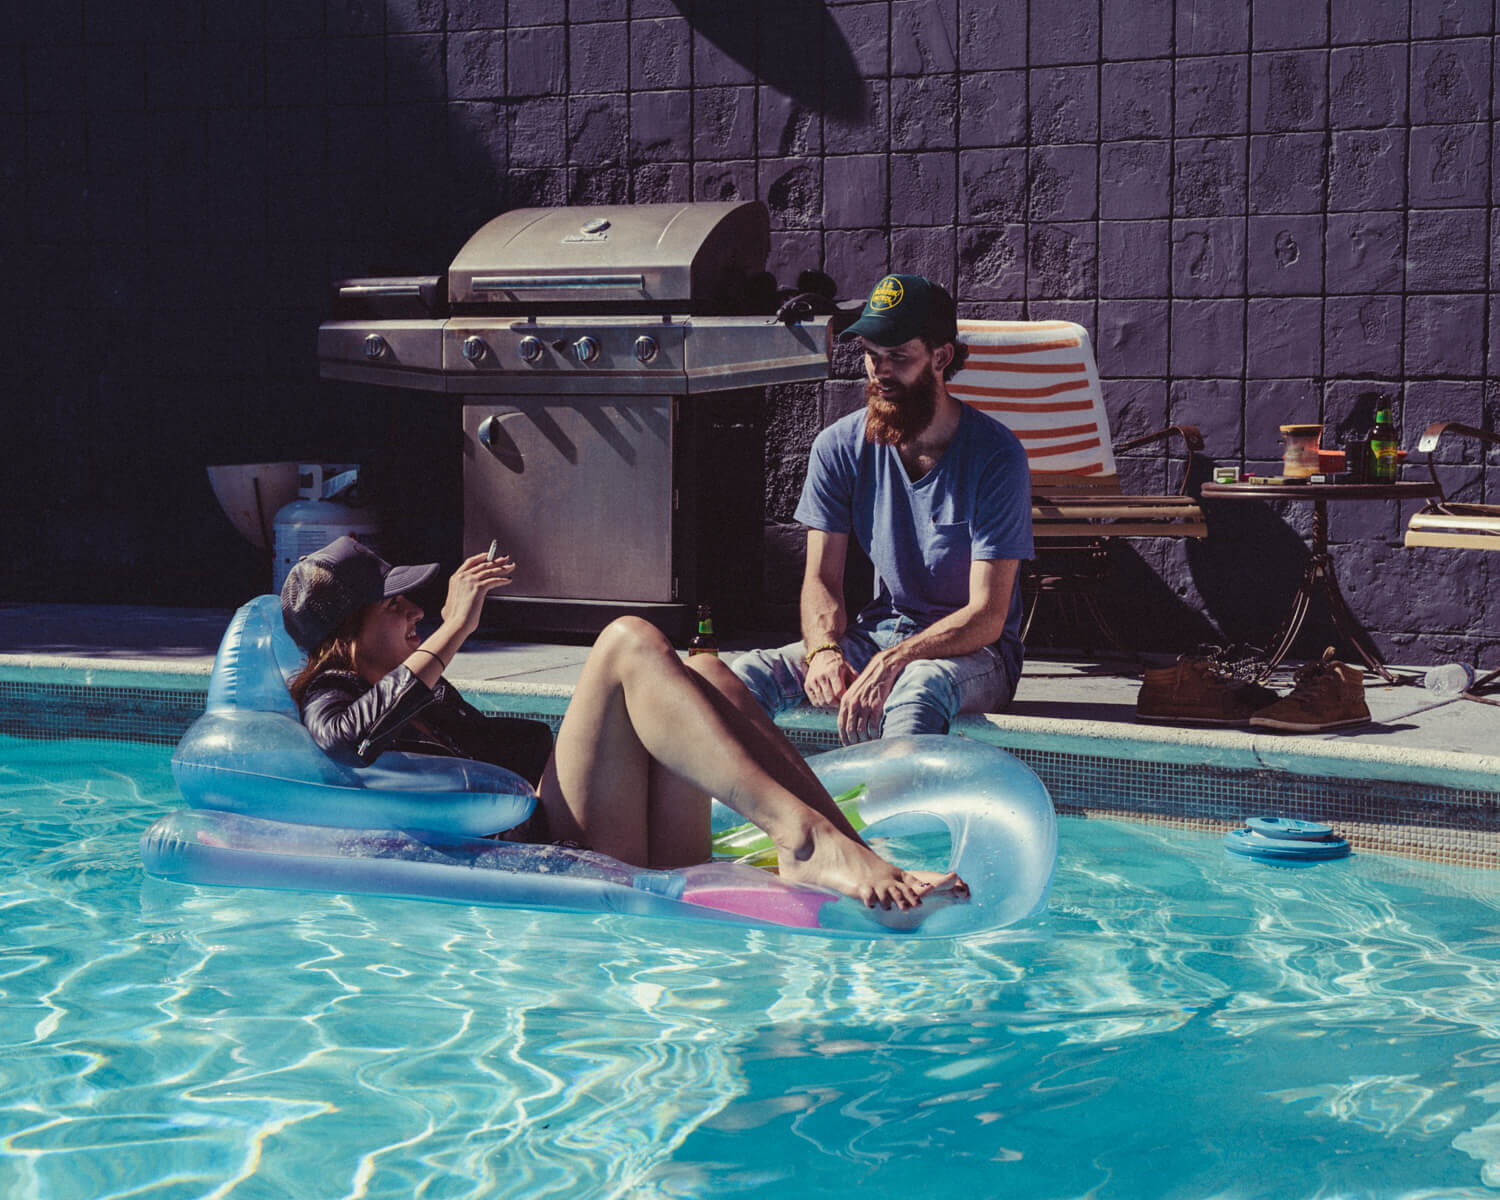 lifestyle photographer Tim Cole shoots in the pool lifestyle photography